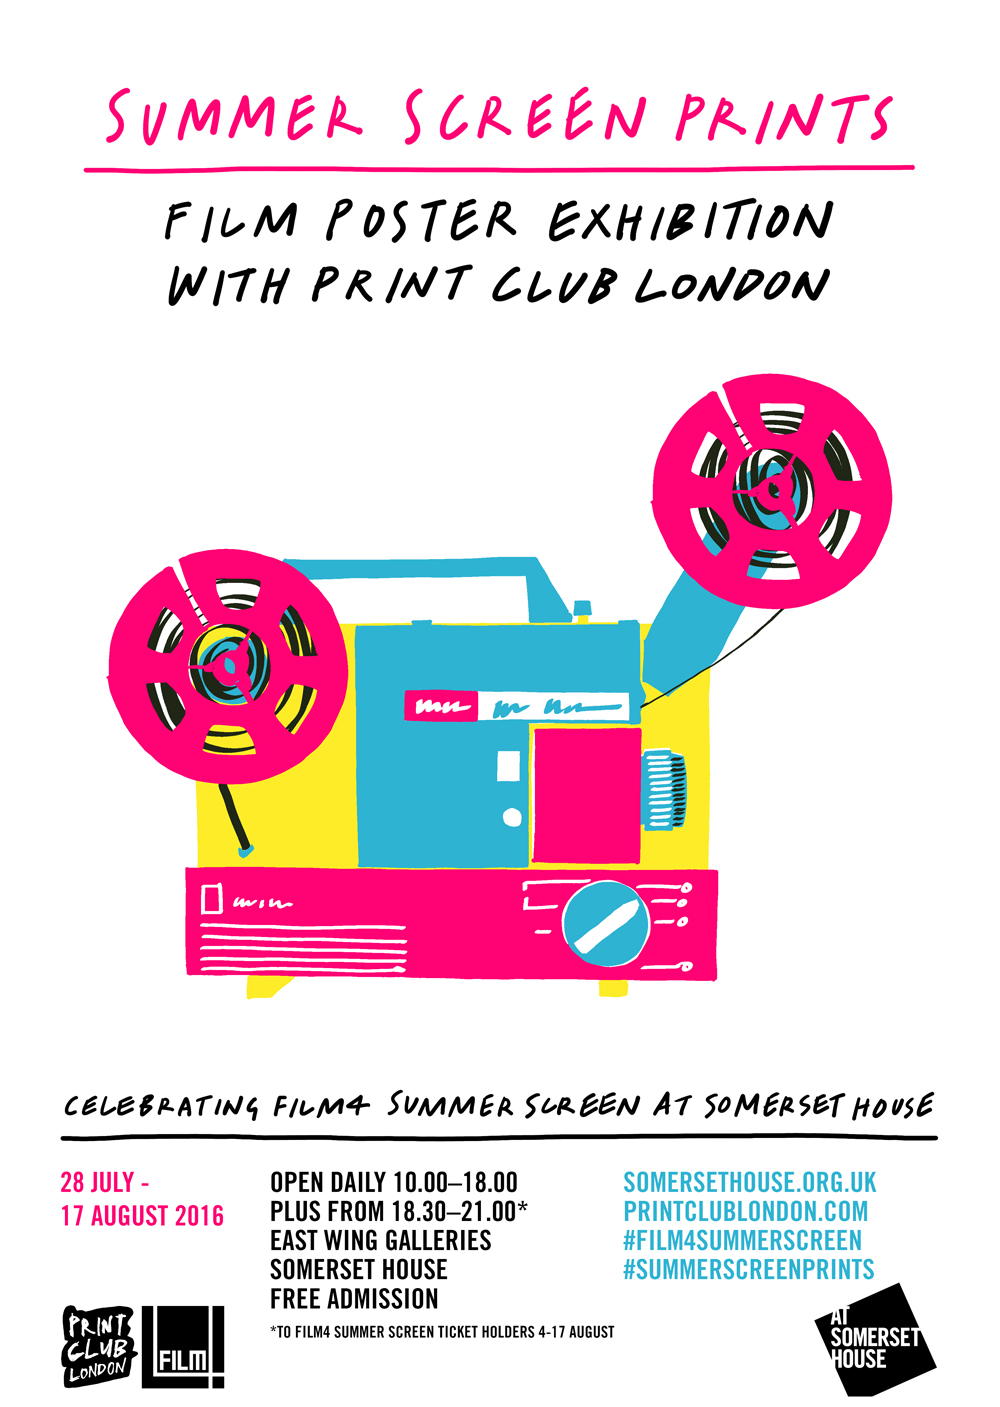 summer-screen-prints-somerset-house-print-club-london-2016